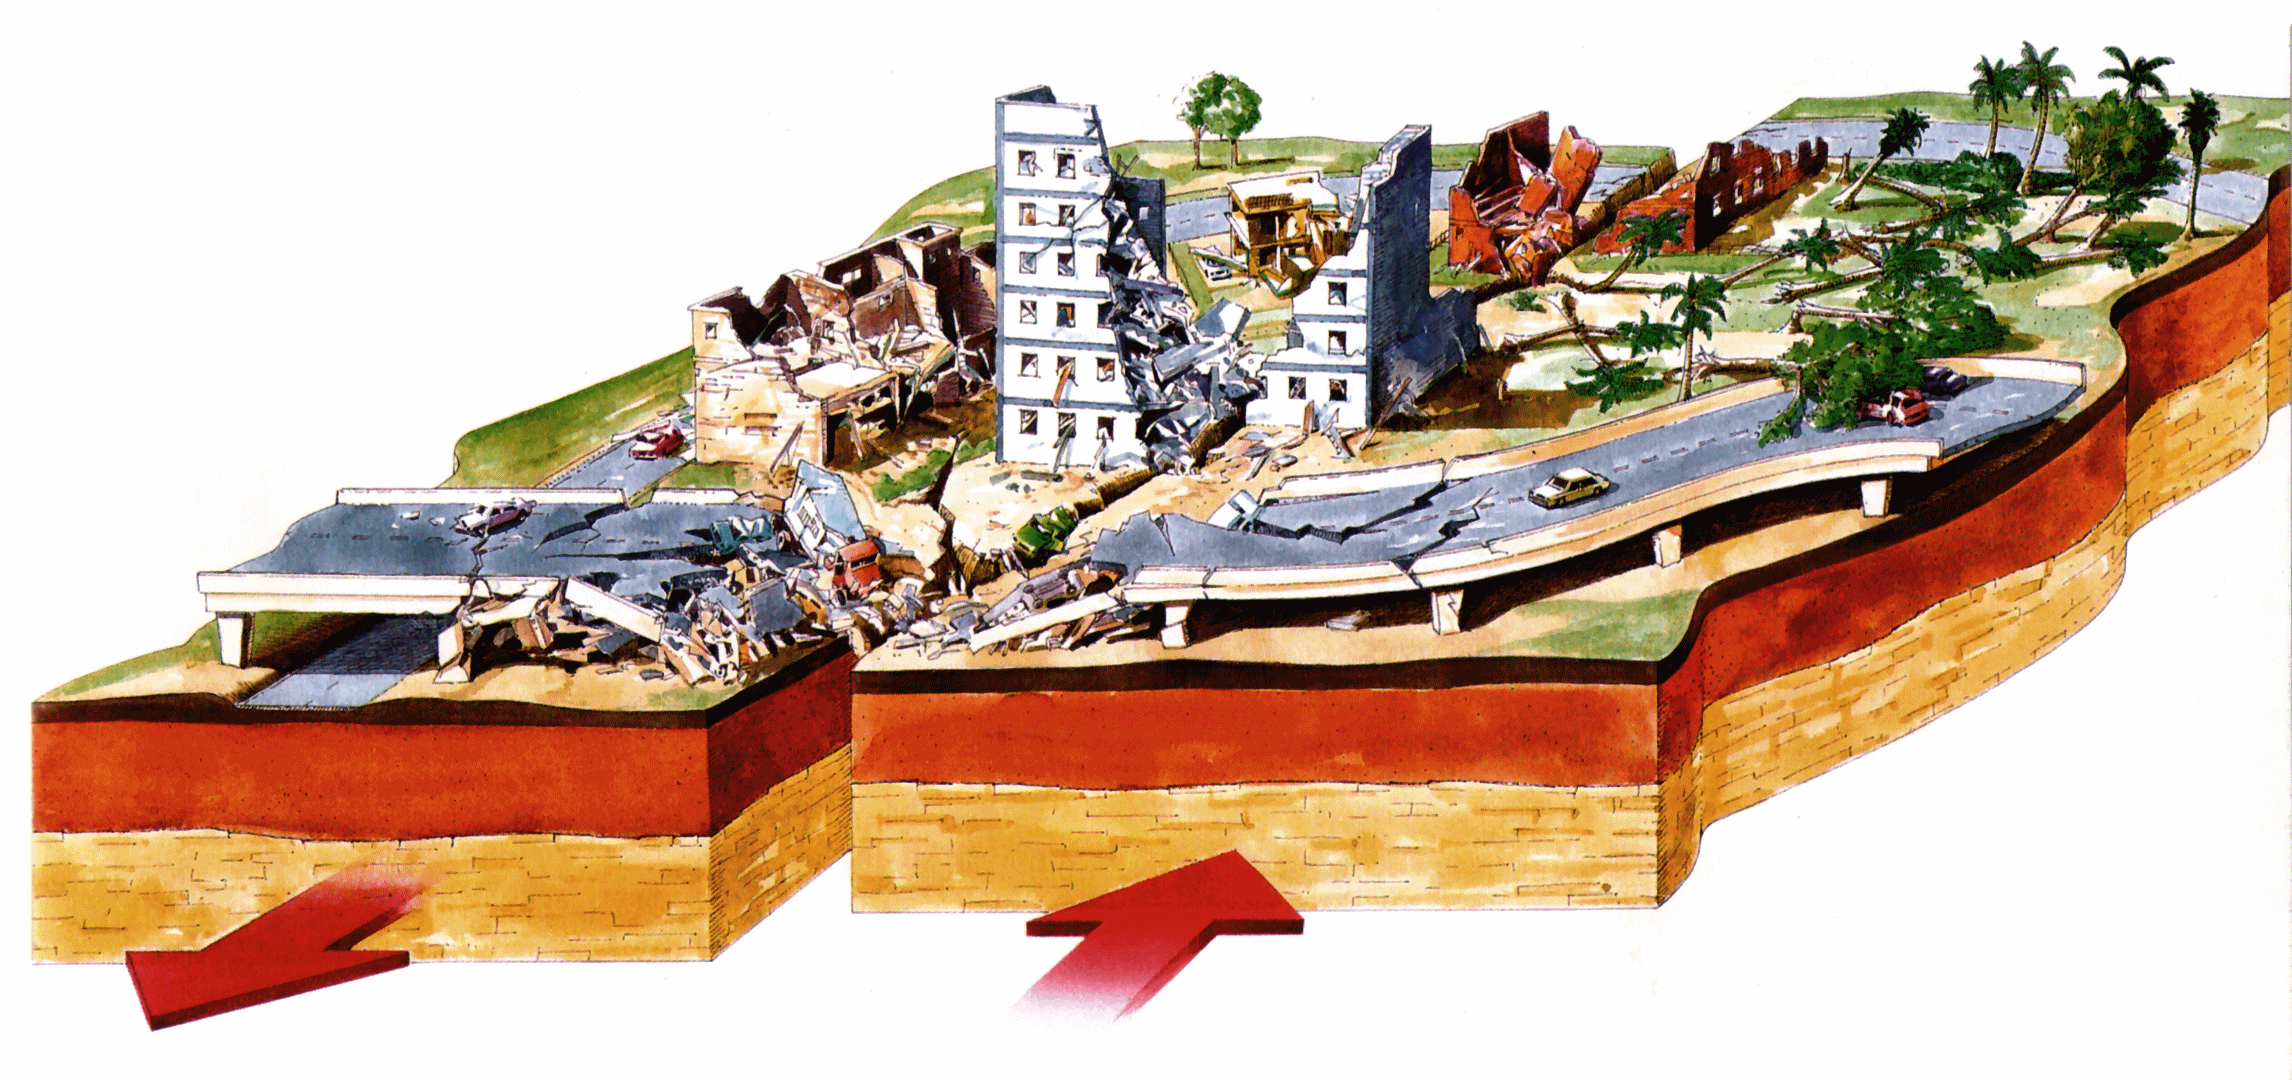 Disaster clipart earthquake damage Collection Earthquakes earthquakes Free clipart